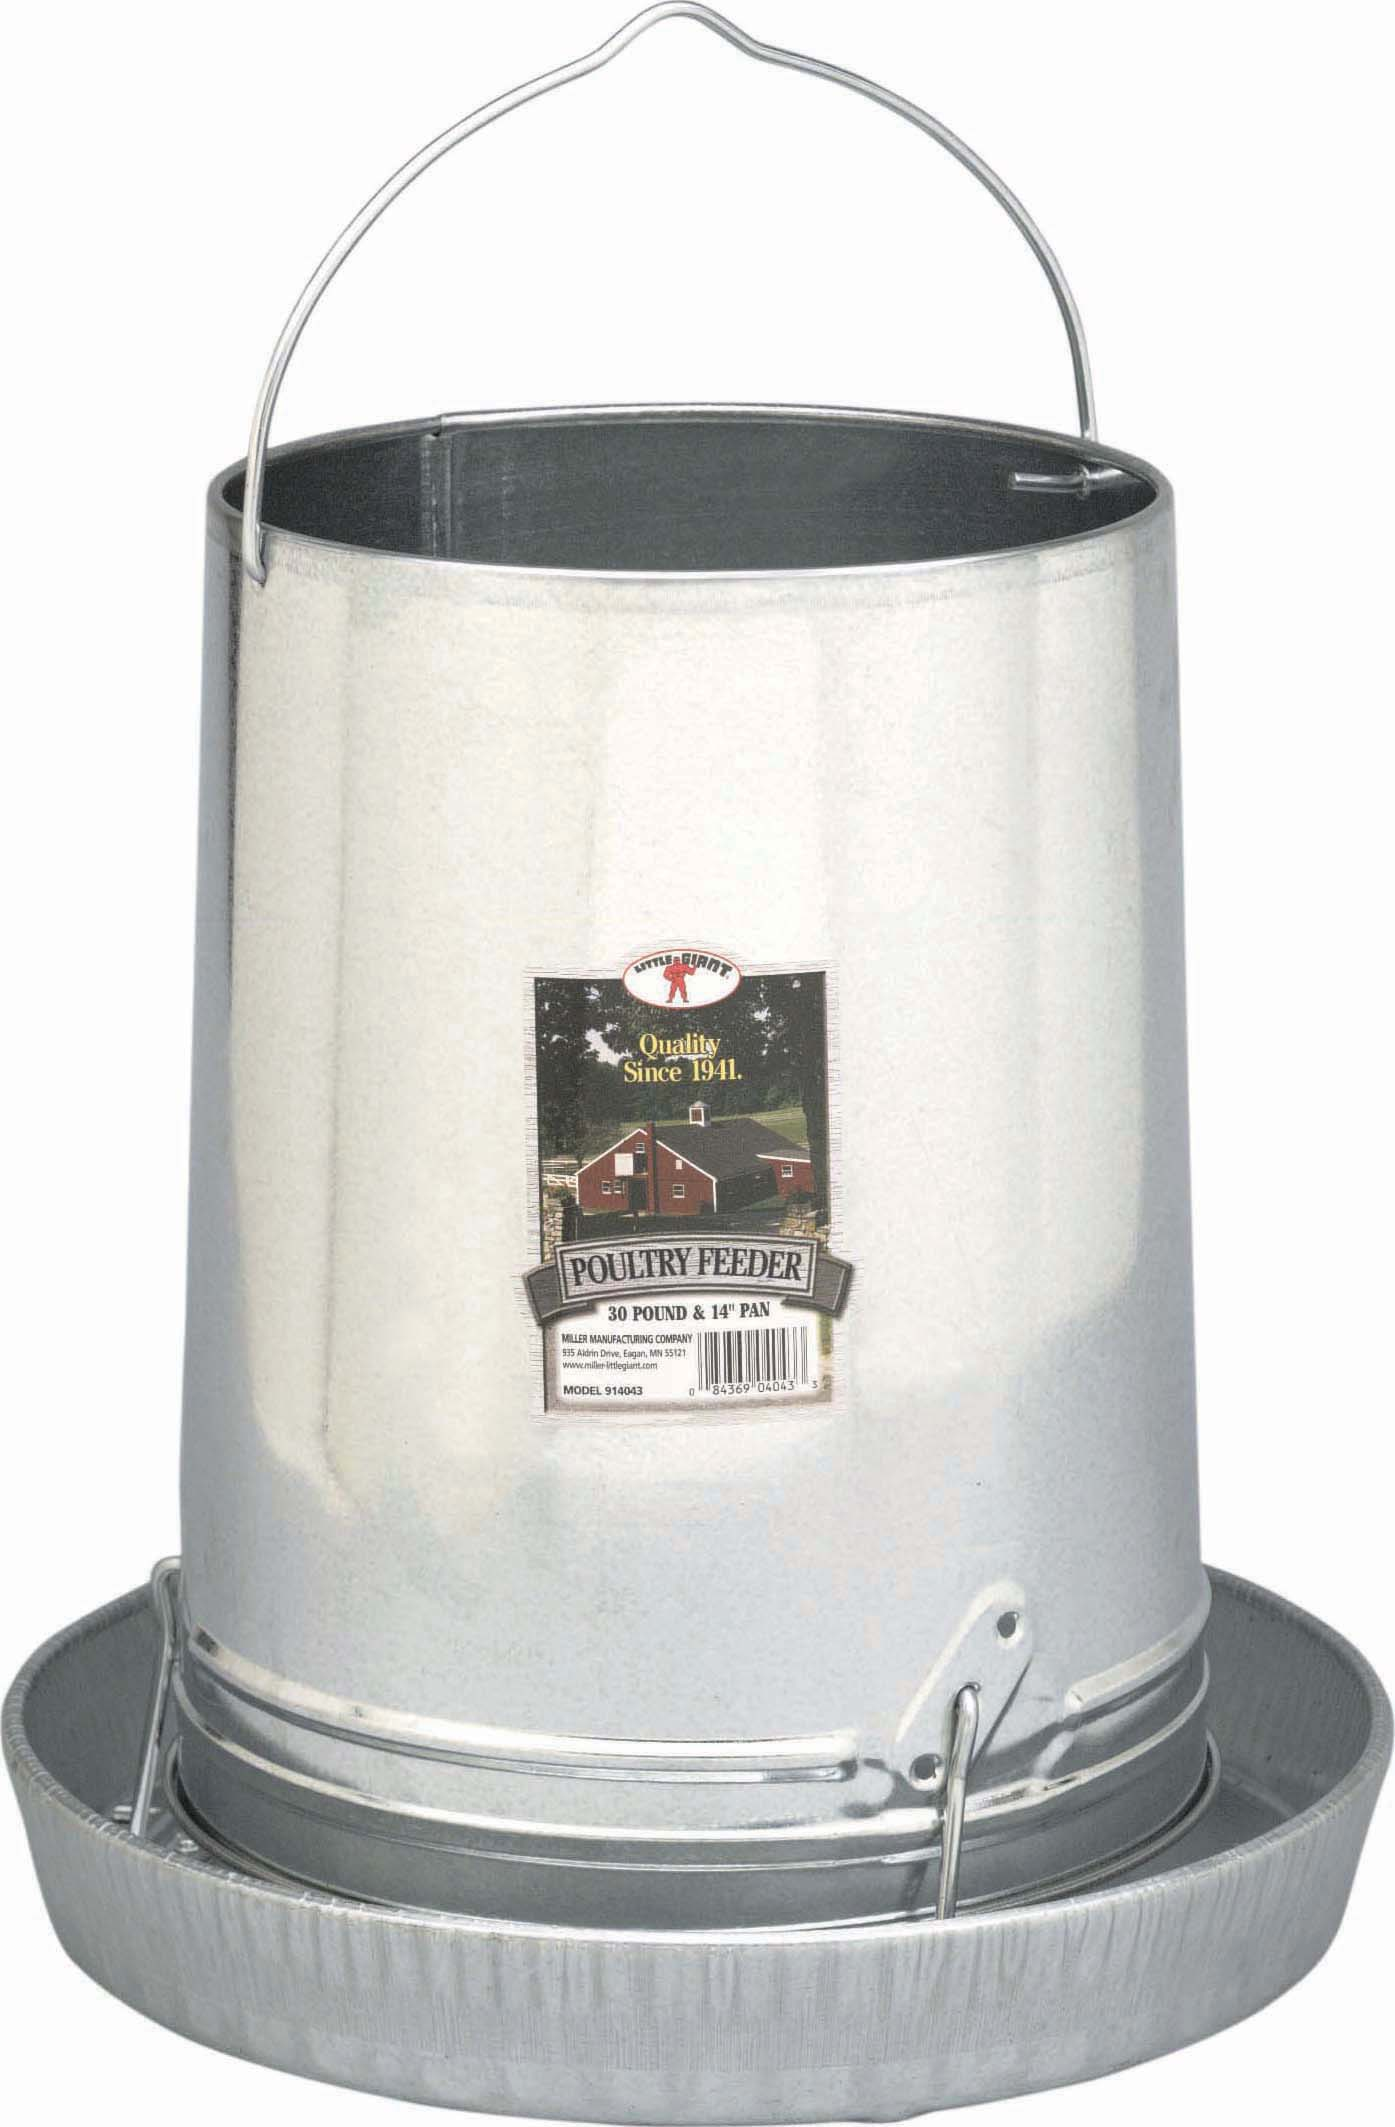 Miller Little Giant Hanging Metal Poultry Feeder, 30-lb